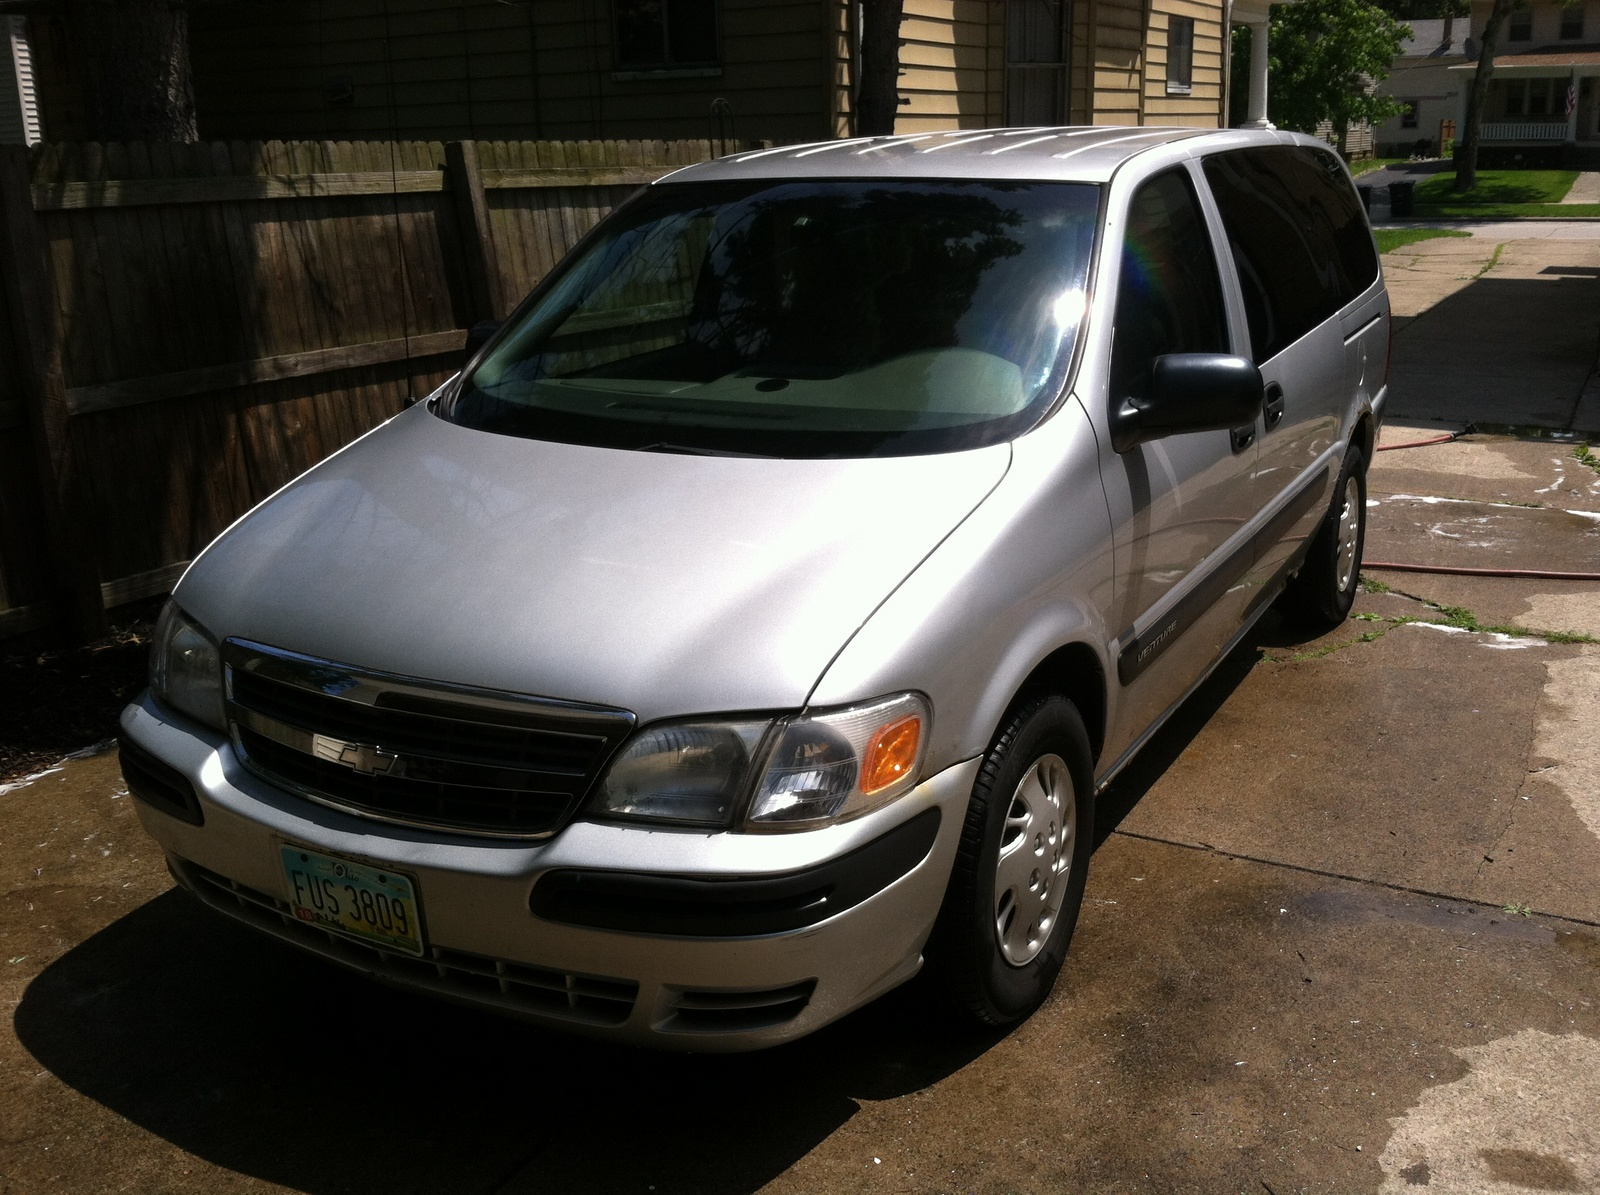 Chevrolet Venture Ls I Have A 1997 Venture And The Electric